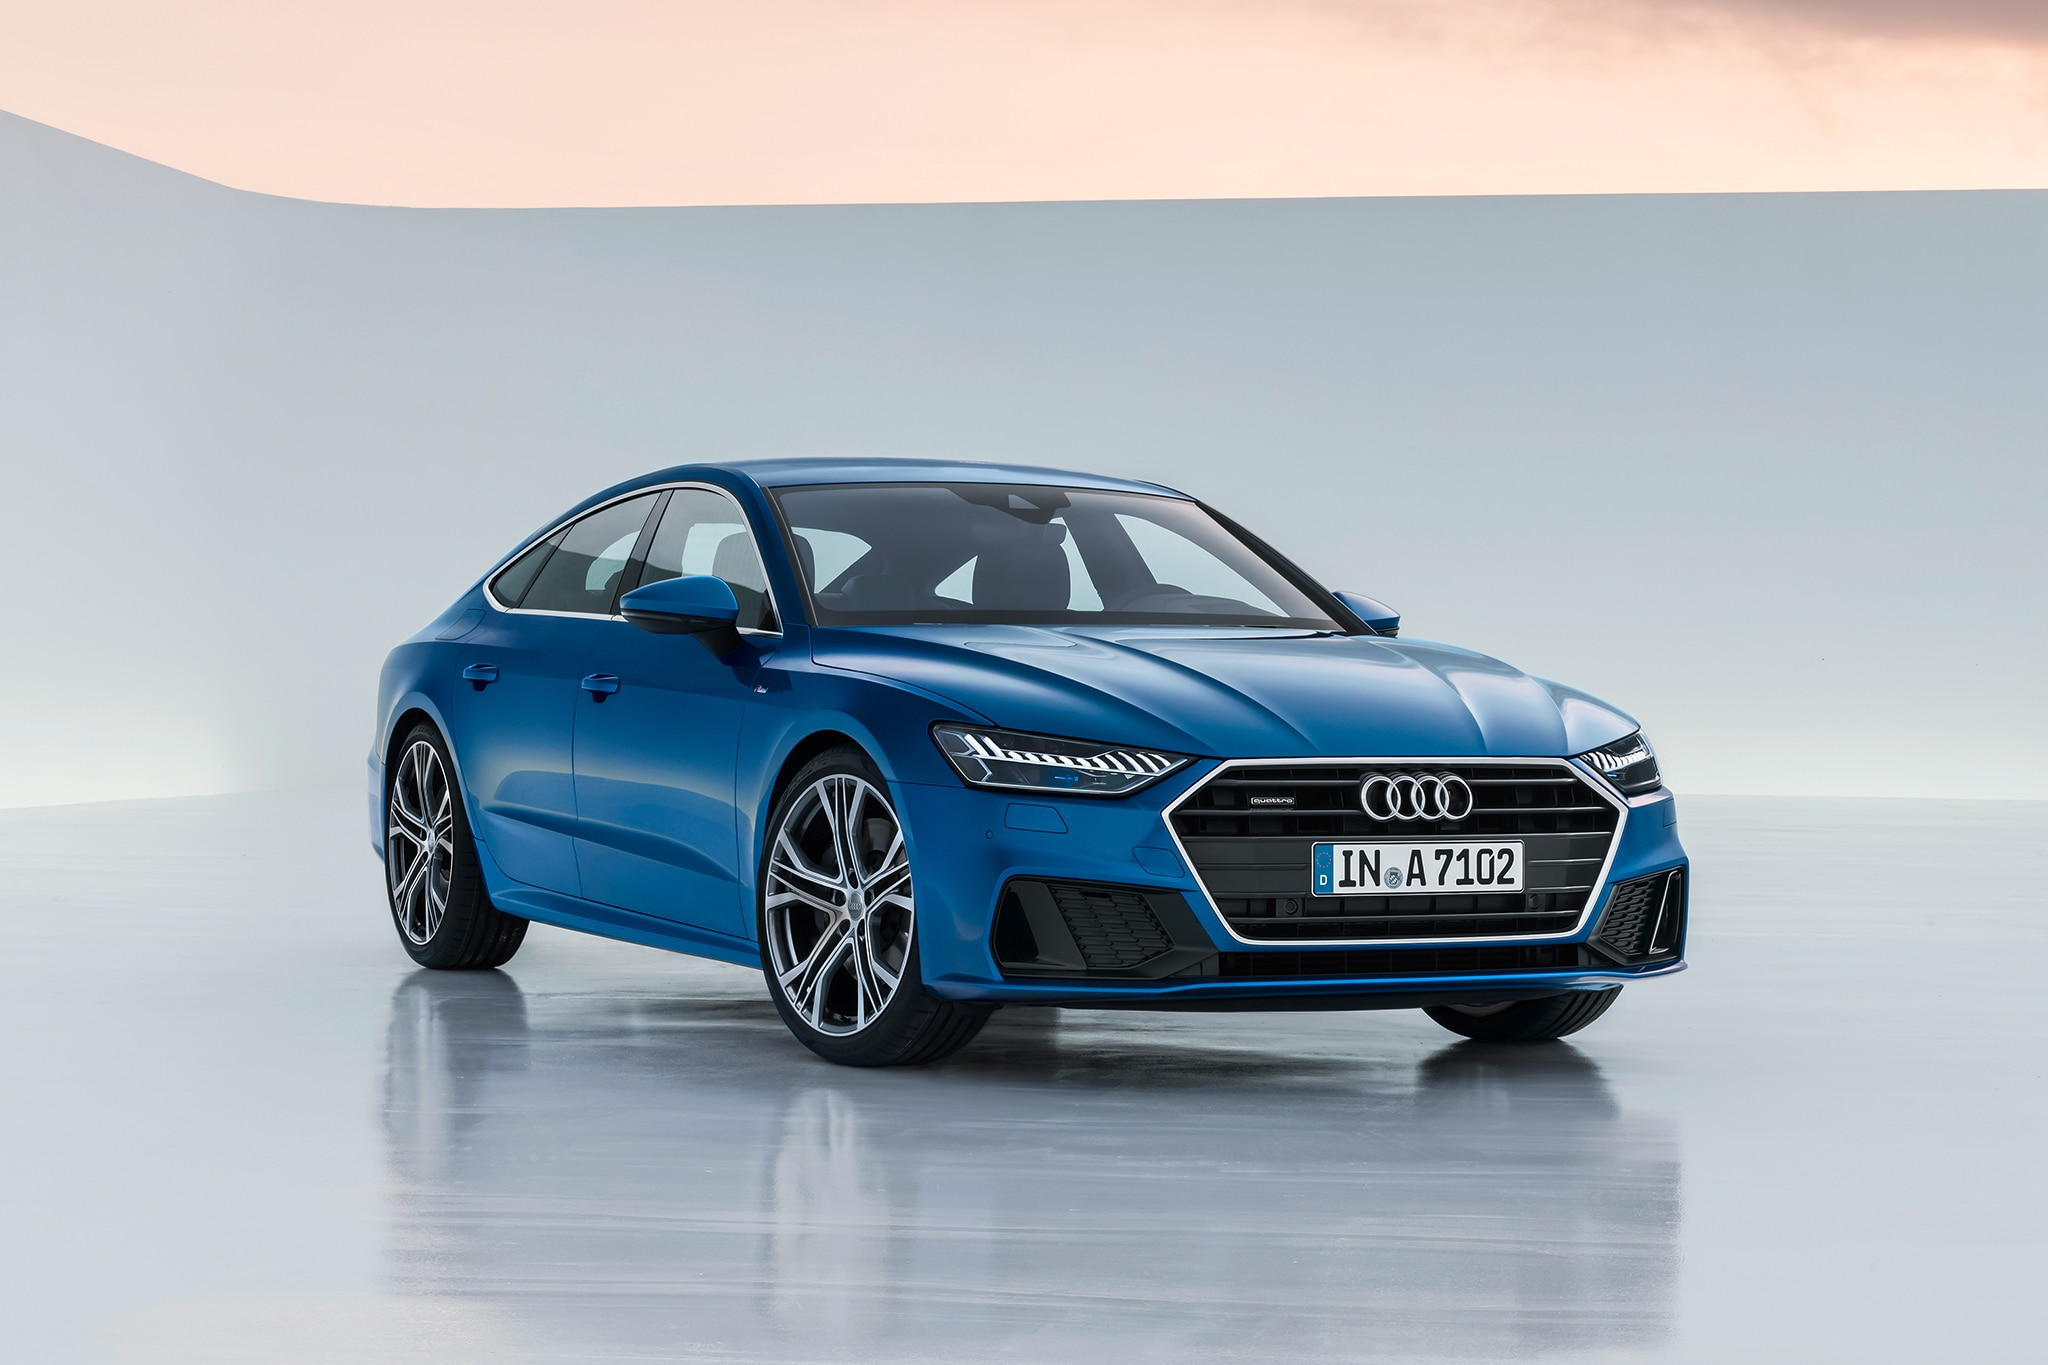 2019 Audi A7 Front Three Quarter 01 1